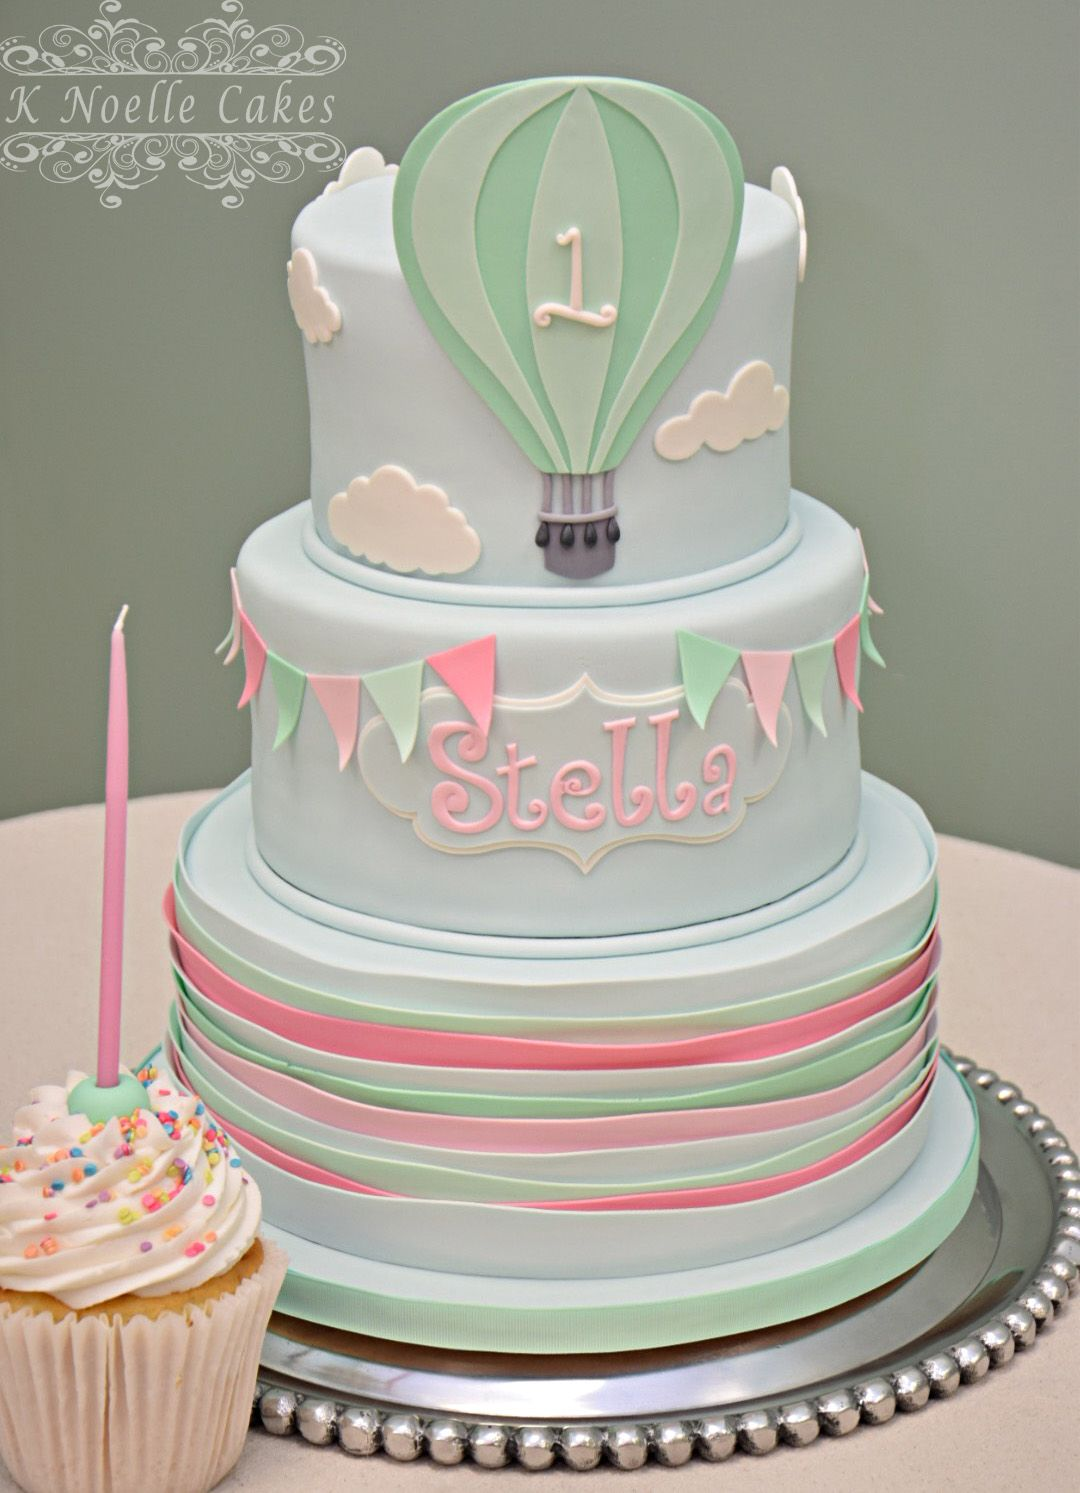 1st Birthday Cake With Hot Air Balloon Theme By K Noelle Cakes 1st